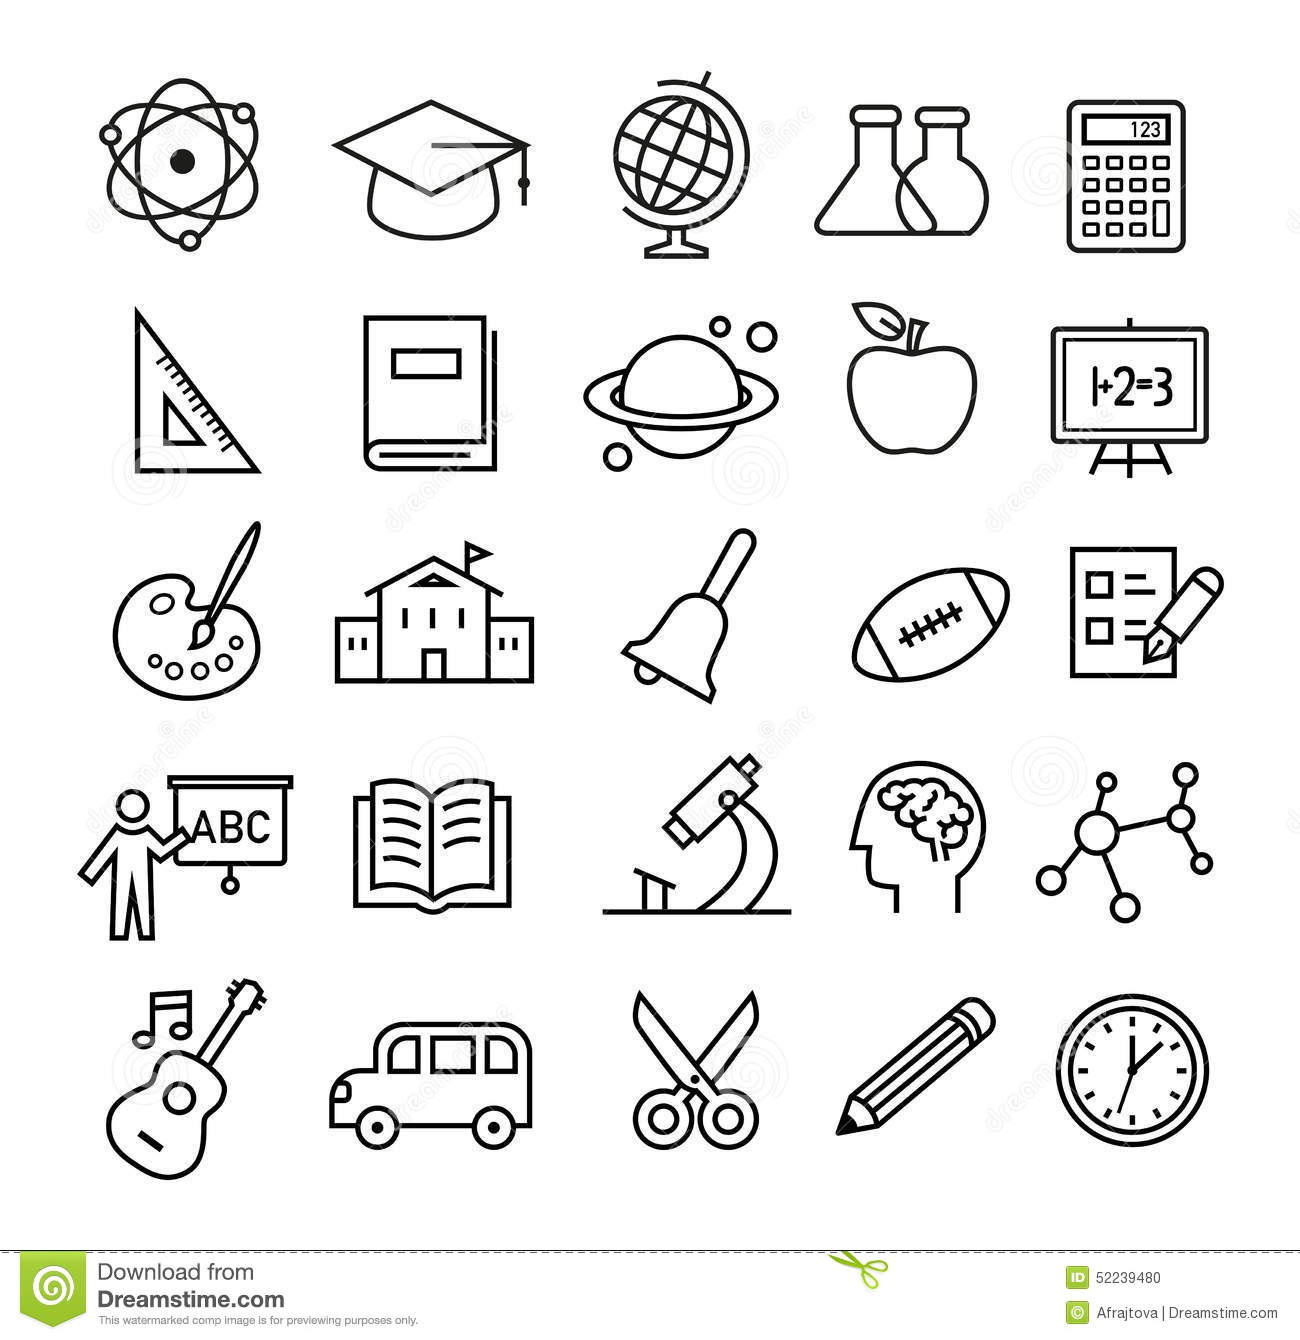 Graphic Design marine transportation subjects in college